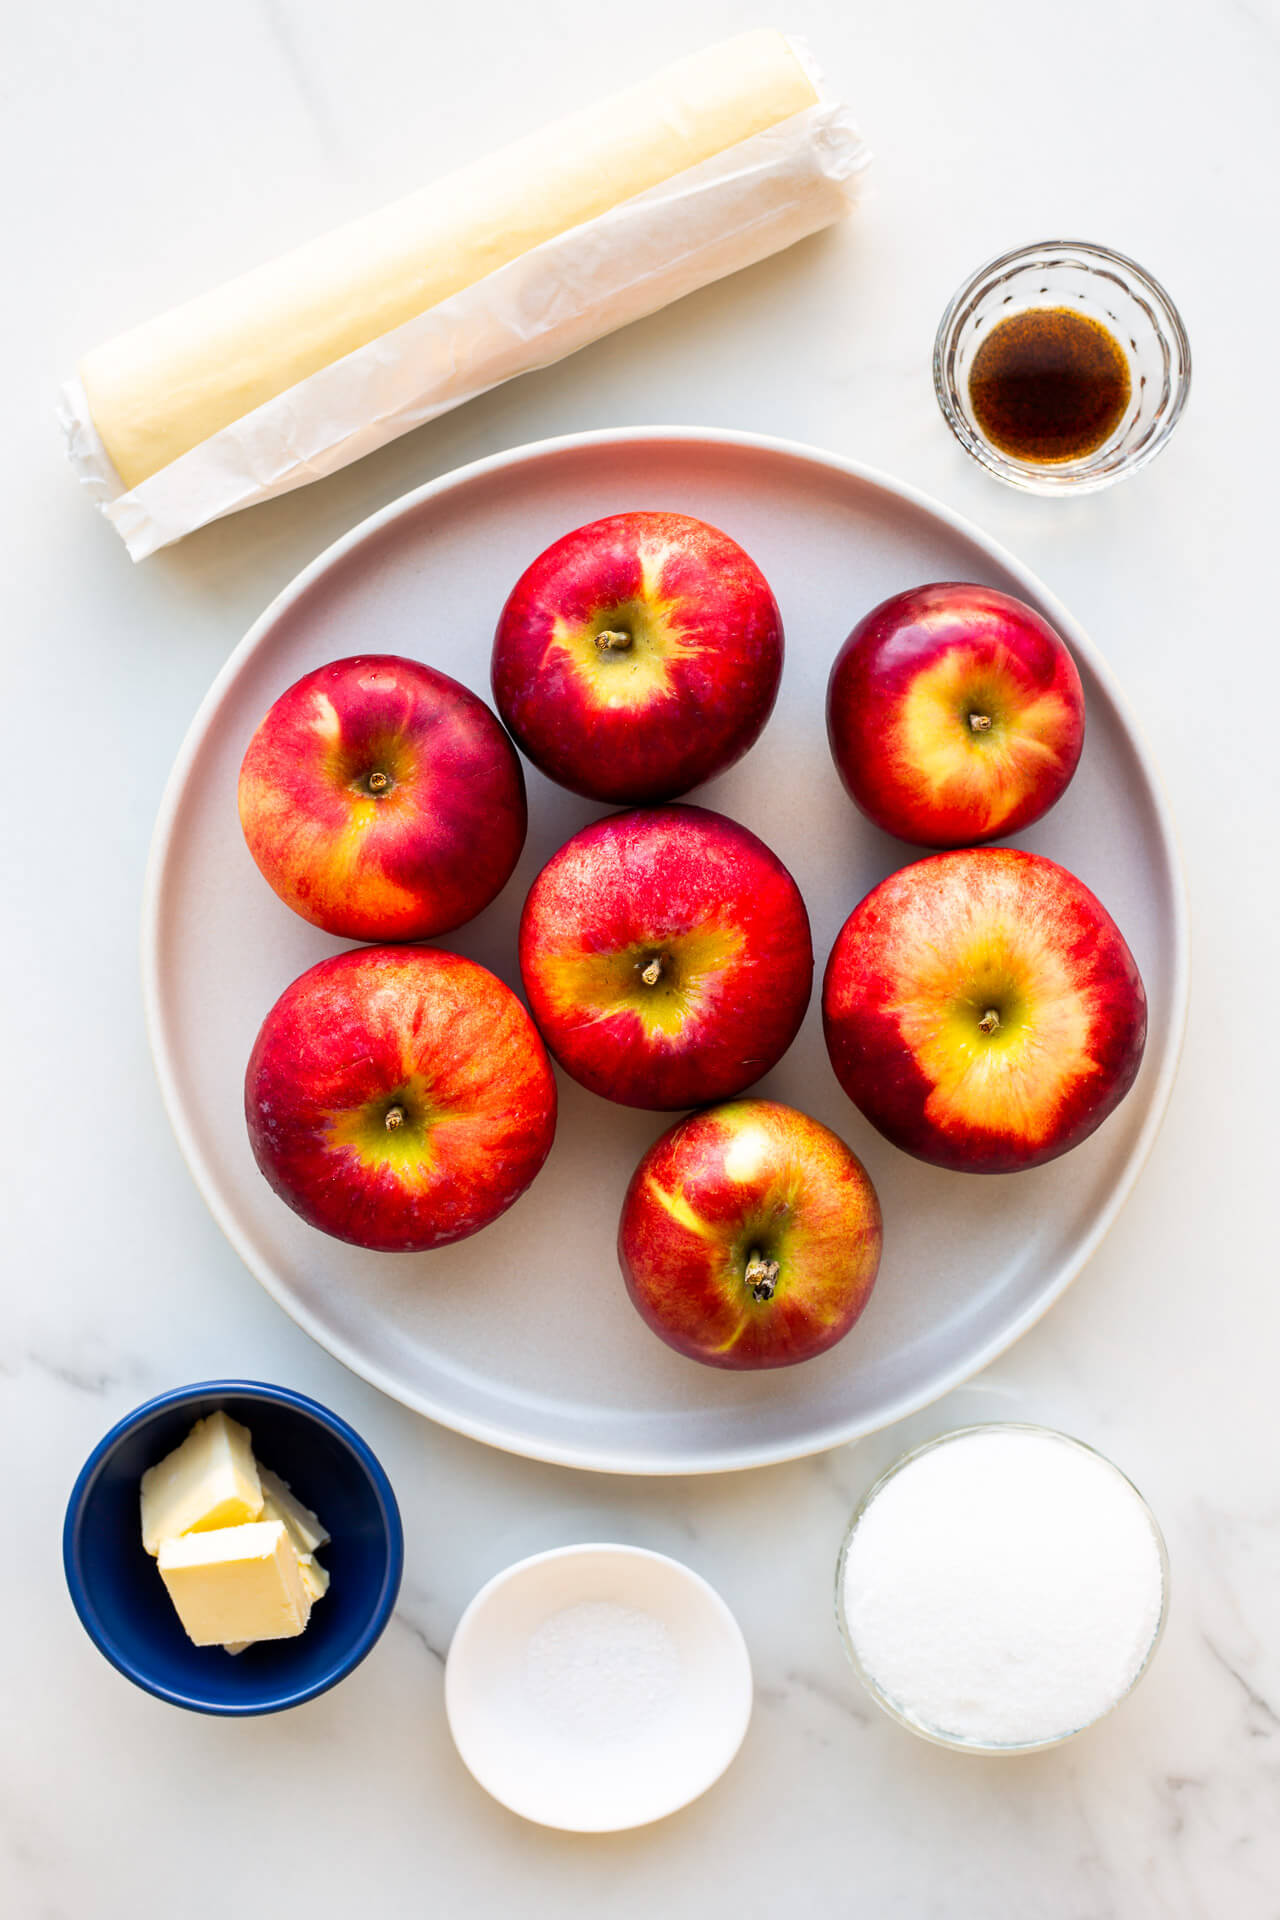 Ingredients to make apple tarte tatin include puff pastry (or pie dough), apples, butter, sugar, a little salt and some vanilla bean paste.